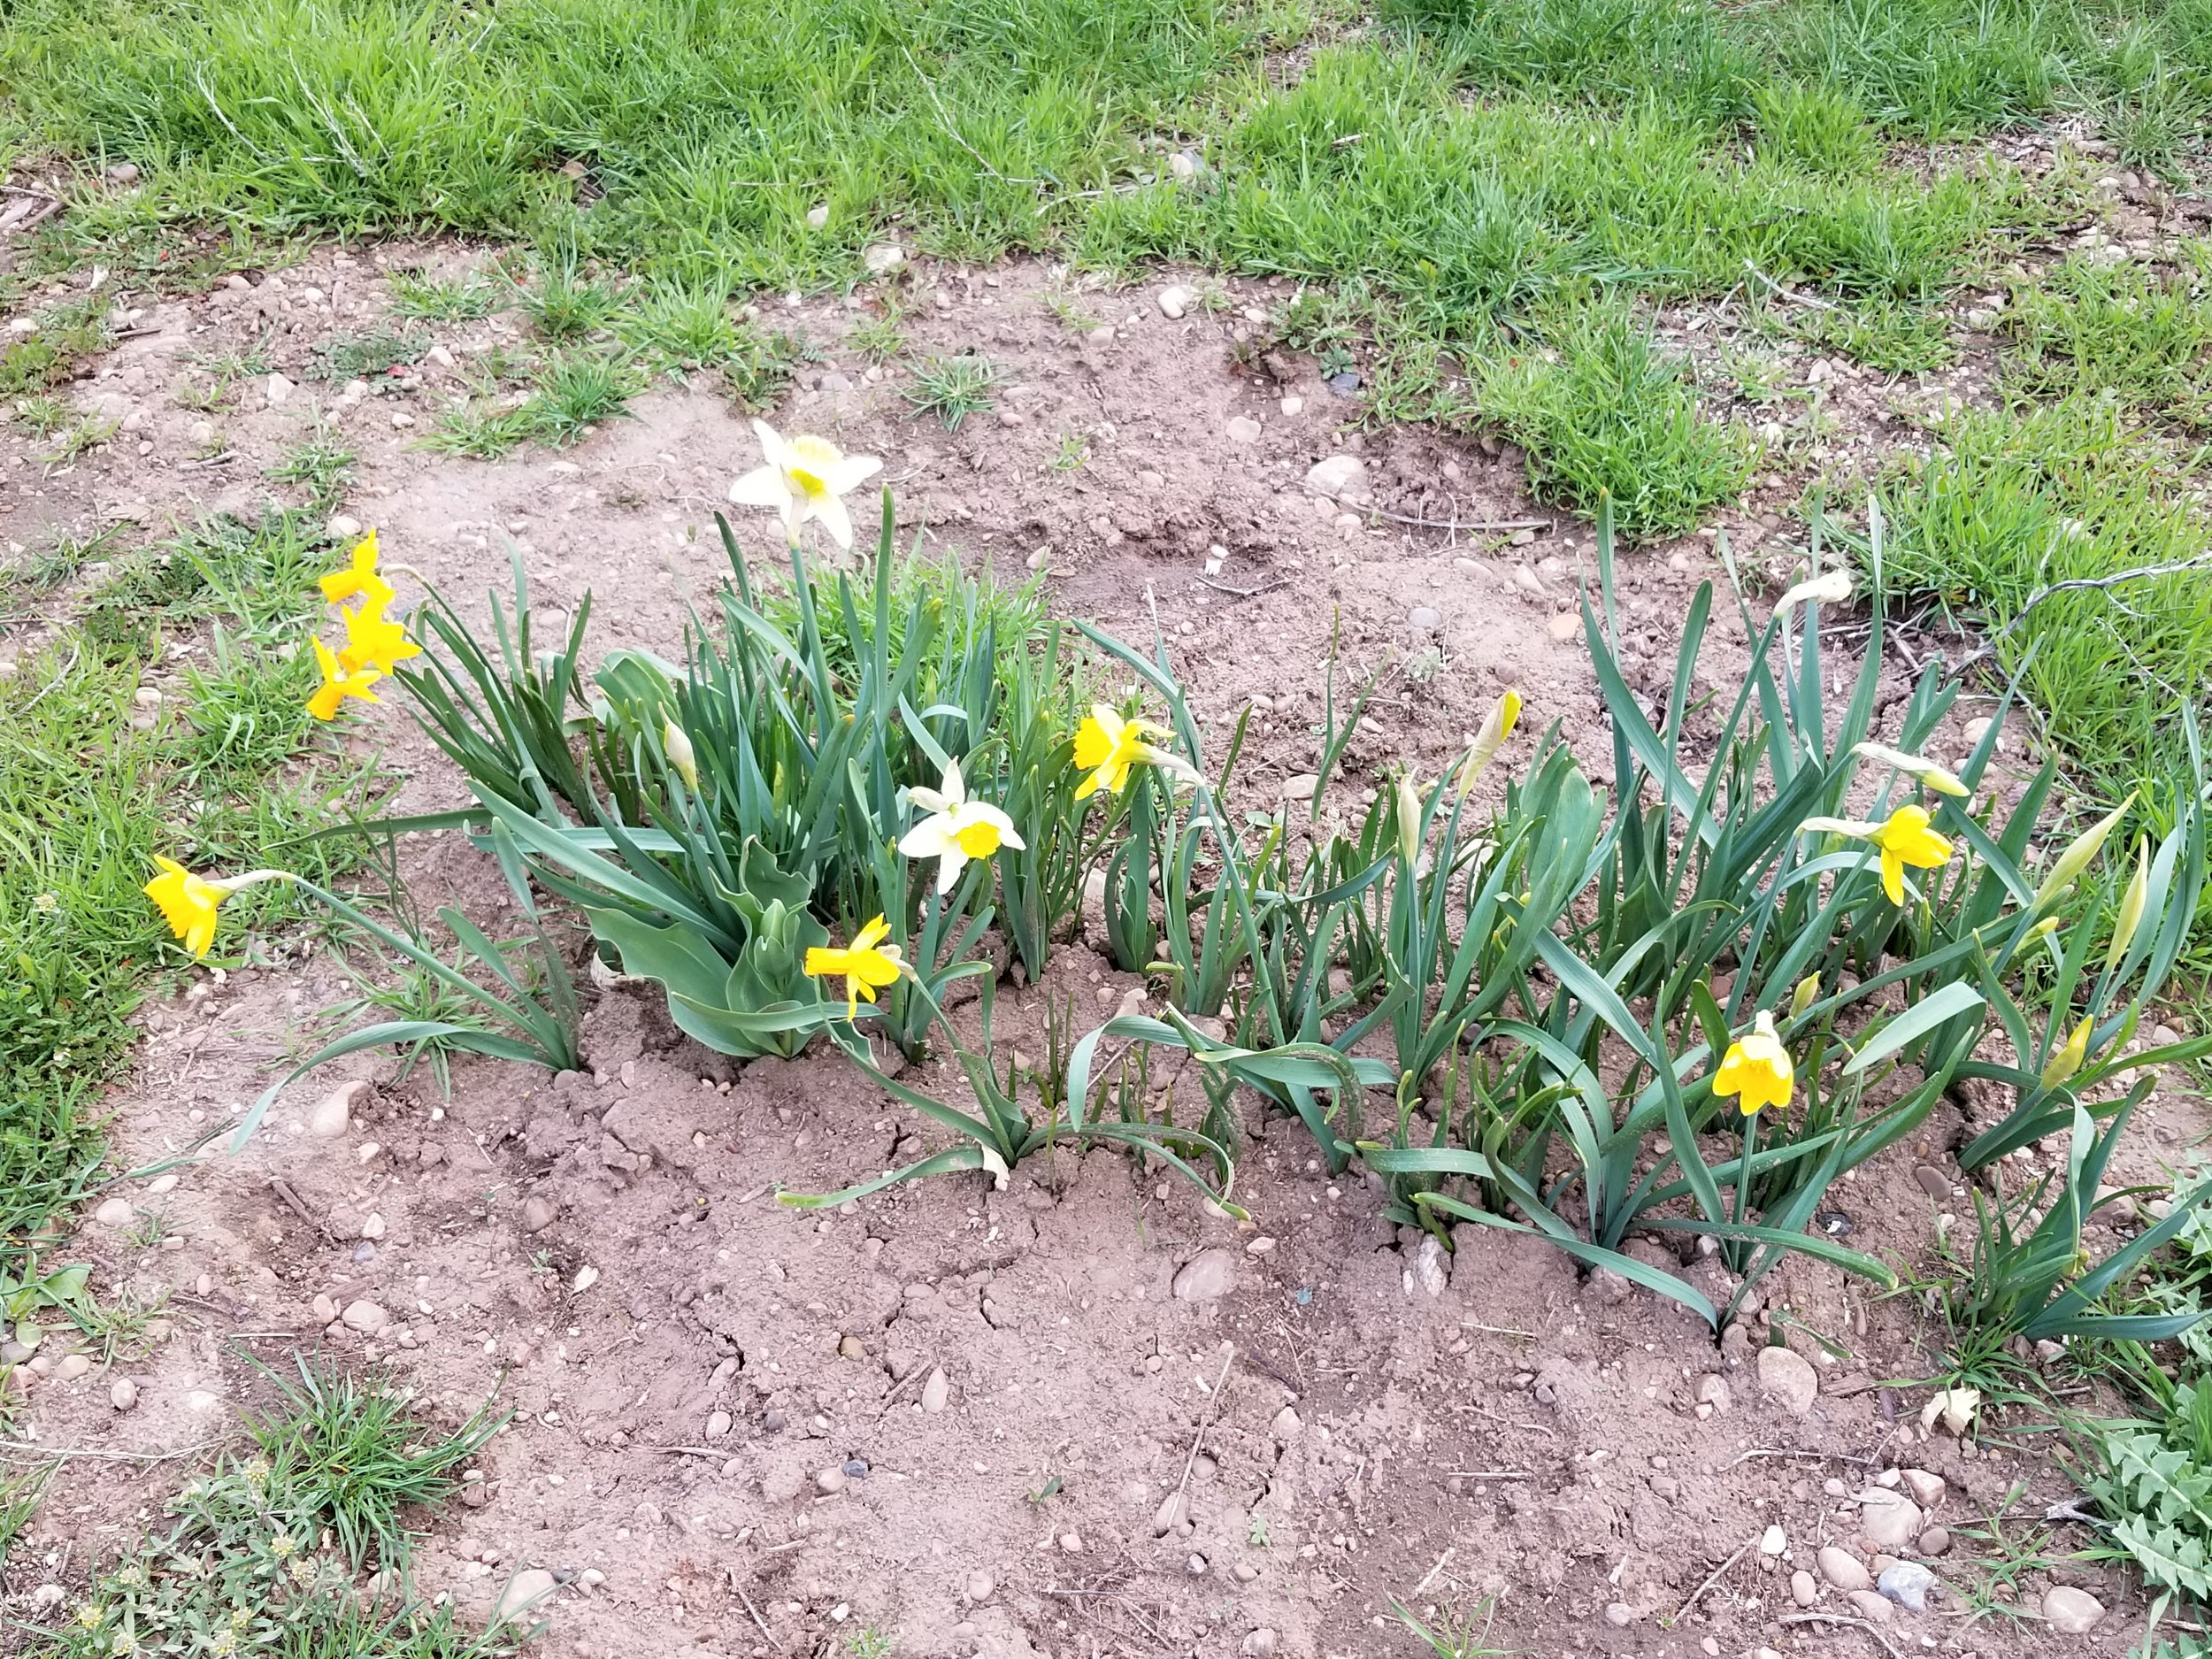 One last patch of daffodils in back. I didn't think these would come back this year, so this is a pleasant surprise!